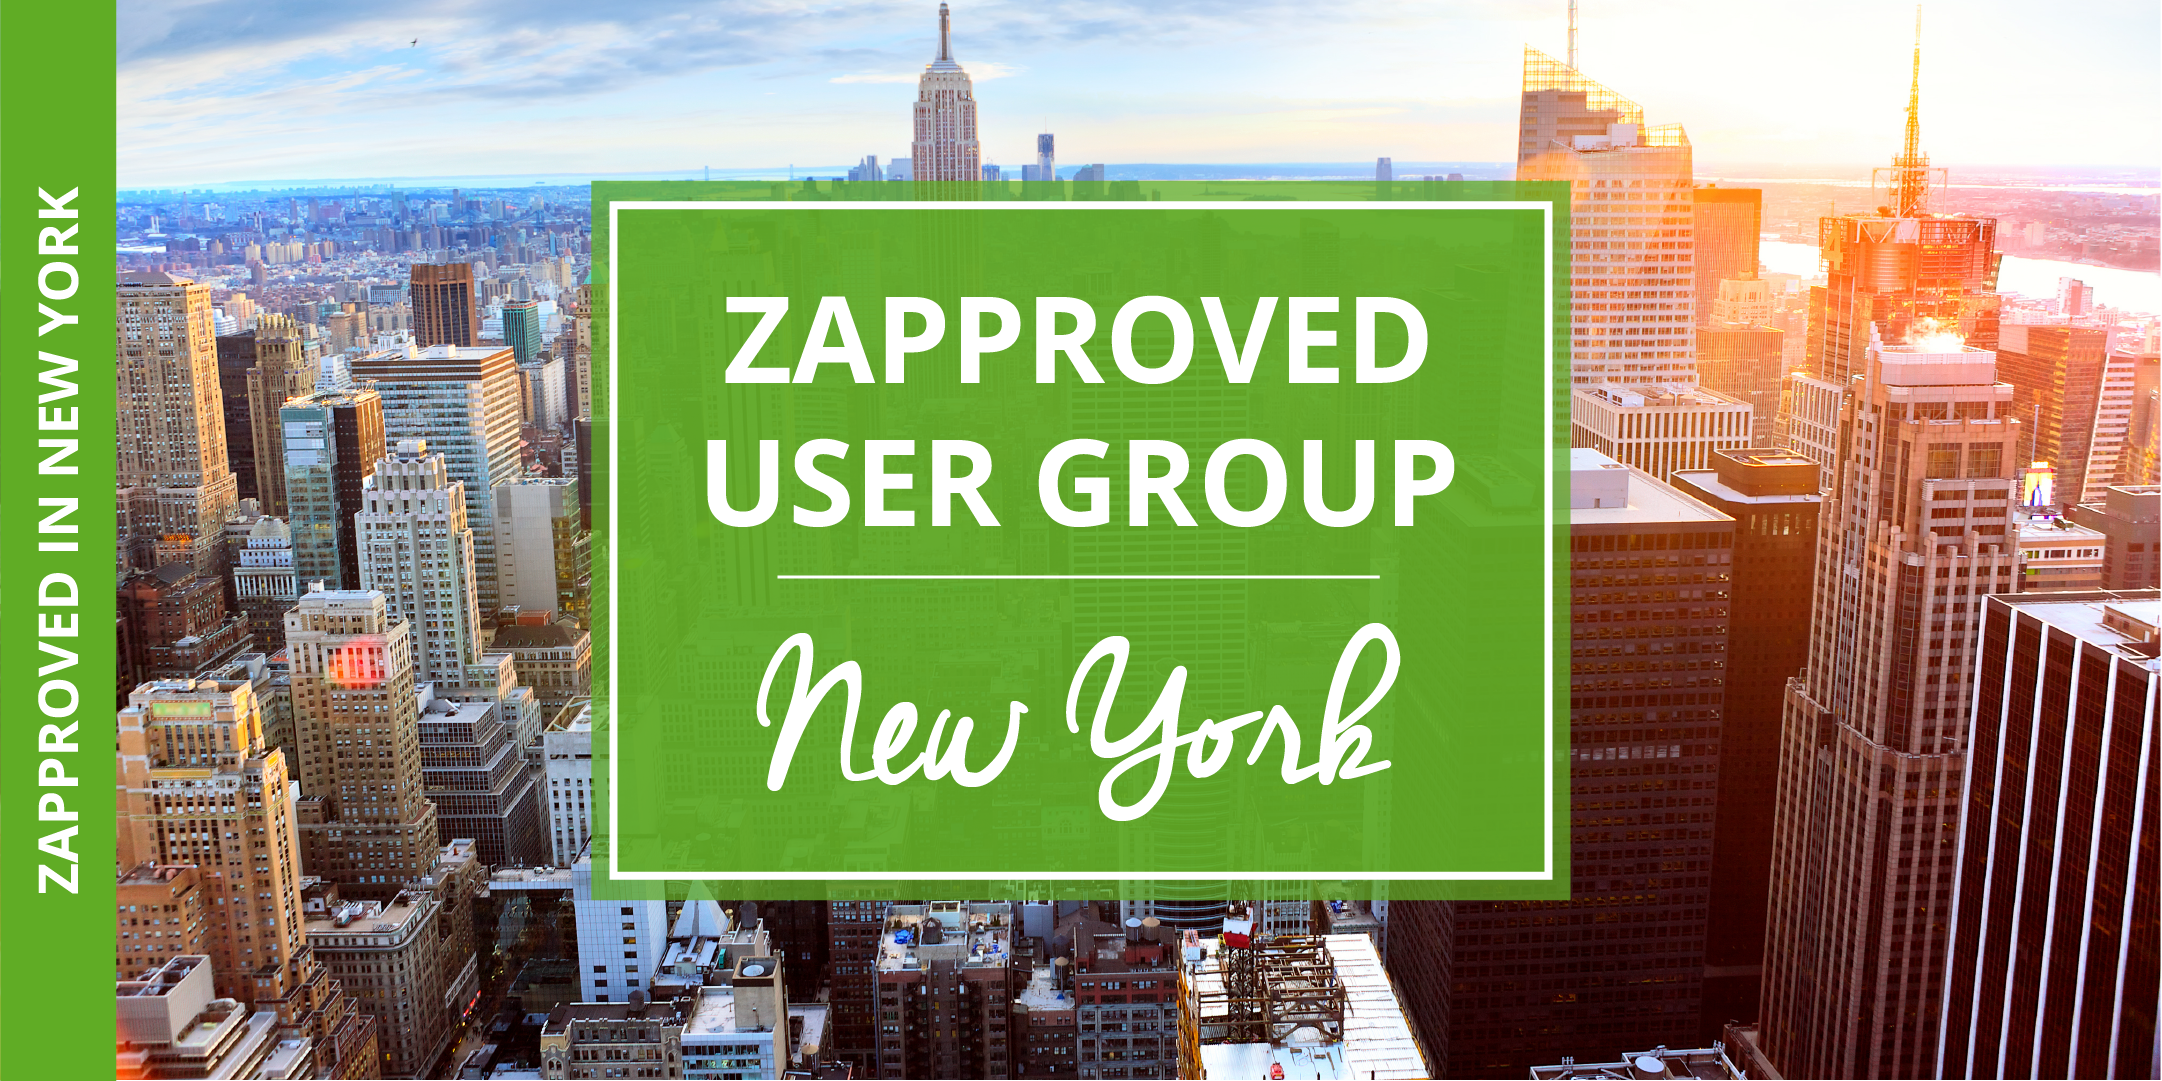 Zapproved User Group | January 2018 in New York